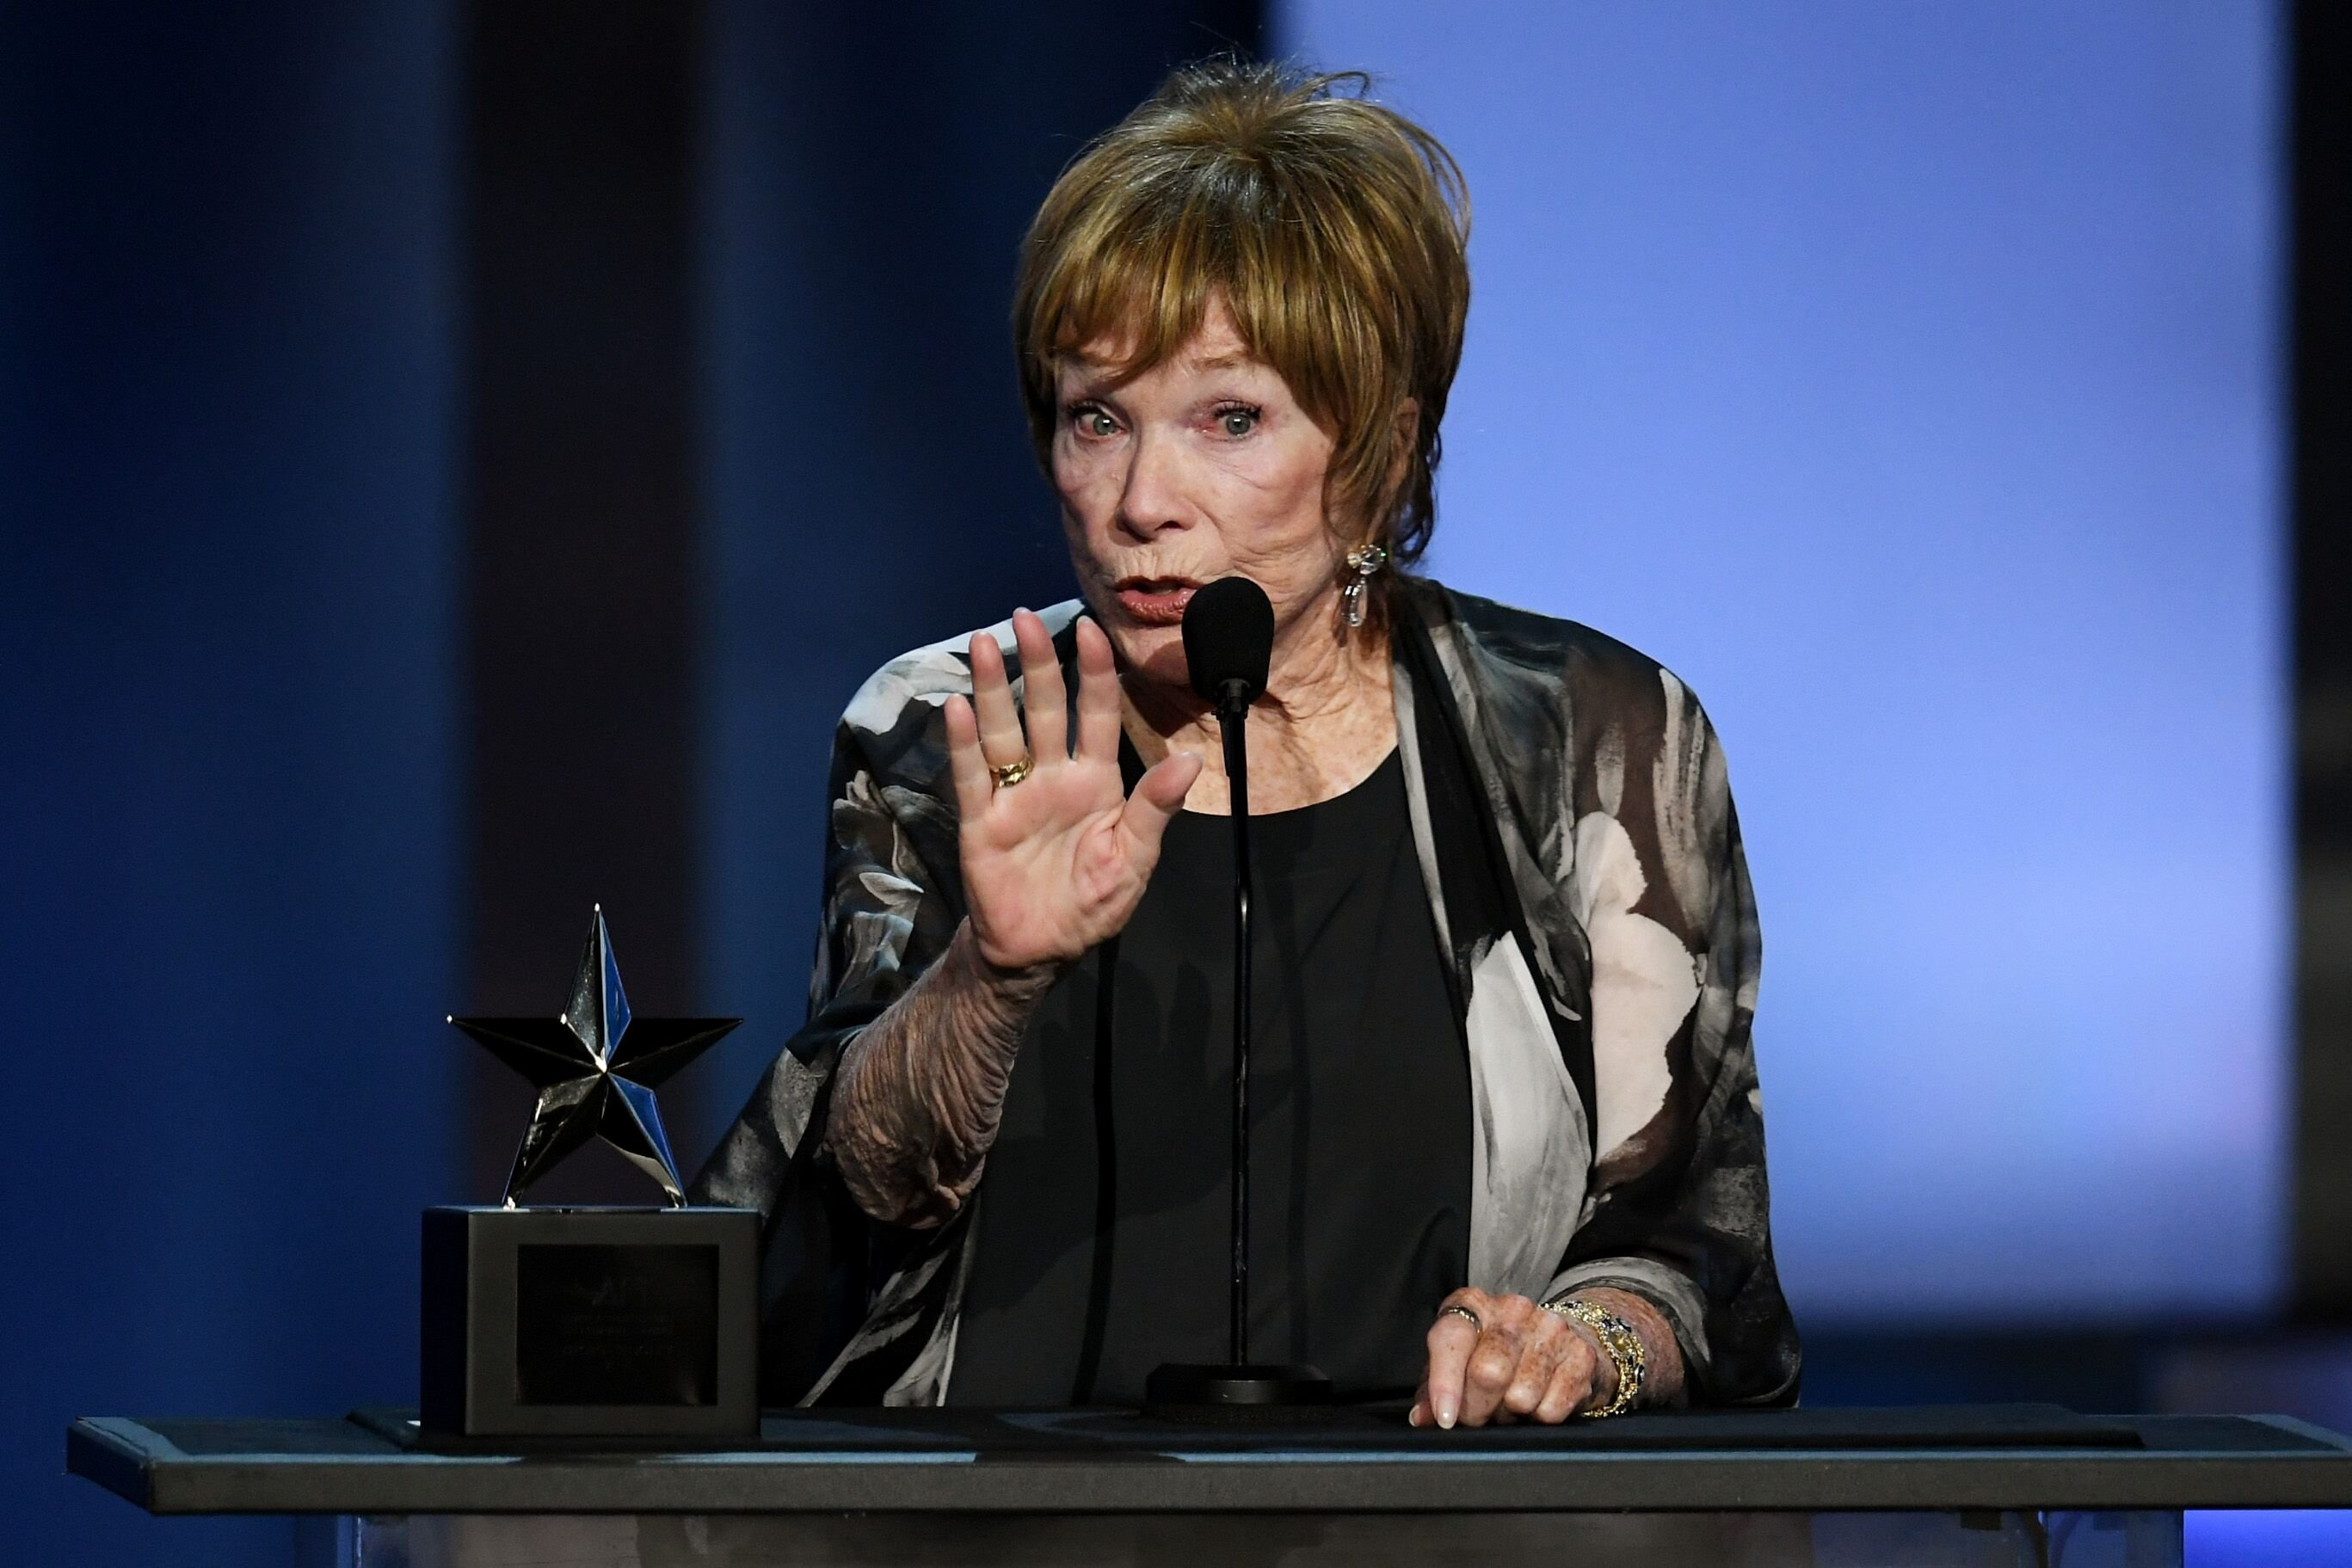 Shirley MacLaine at the American Film Institute's 46th Life Achievement Award Gala on June 7, 2018 in Hollywood, California | Photo: Getty Images